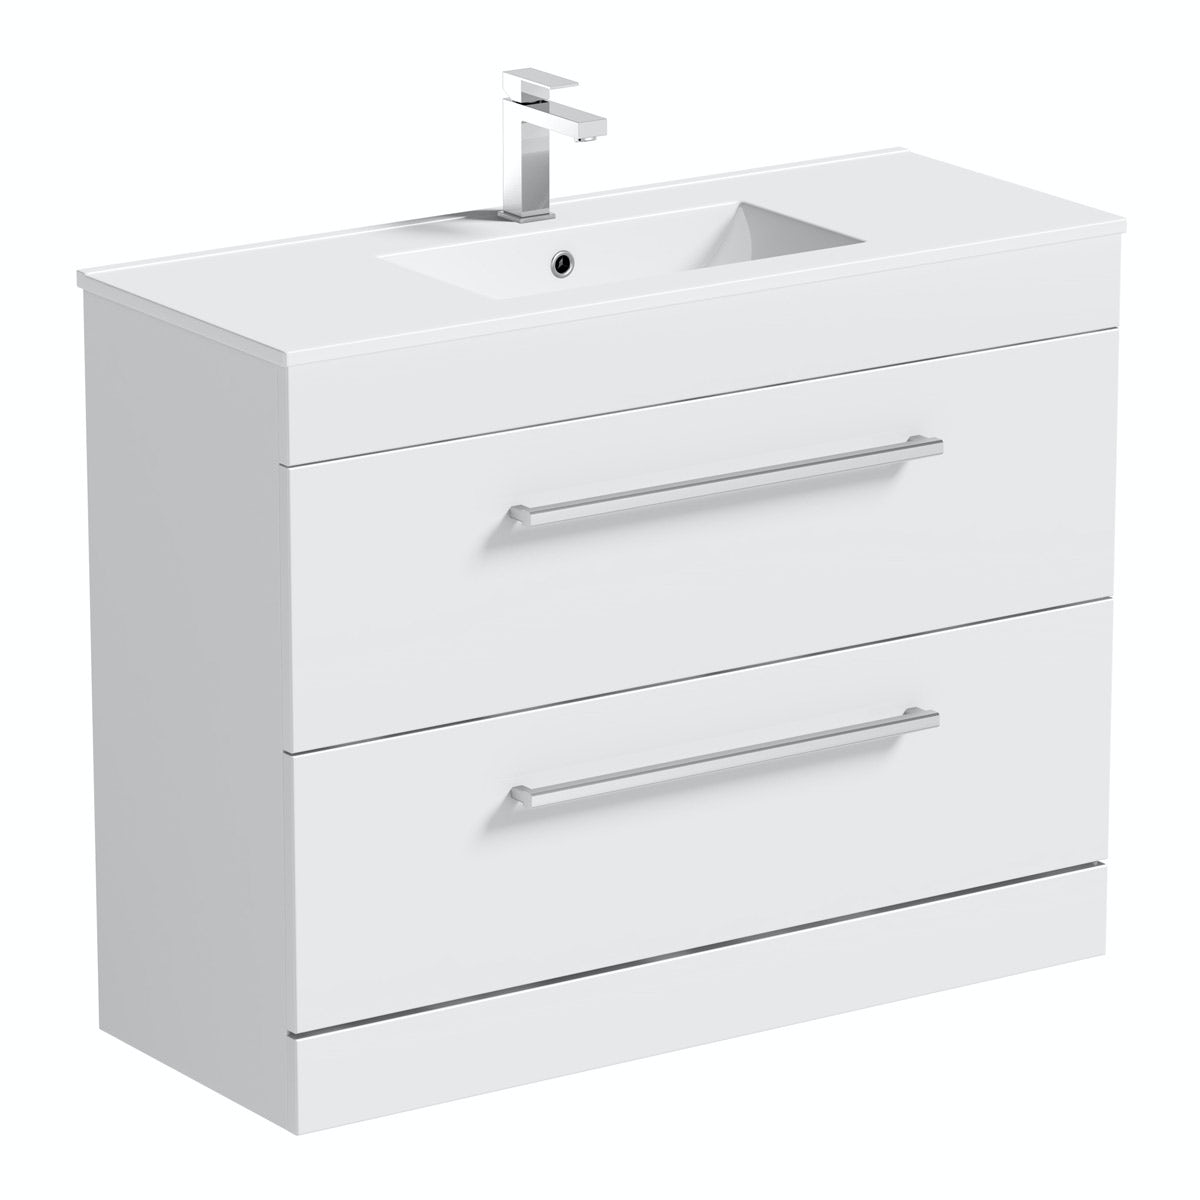 Orchard Derwent white vanity drawer unit and basin 1000mm